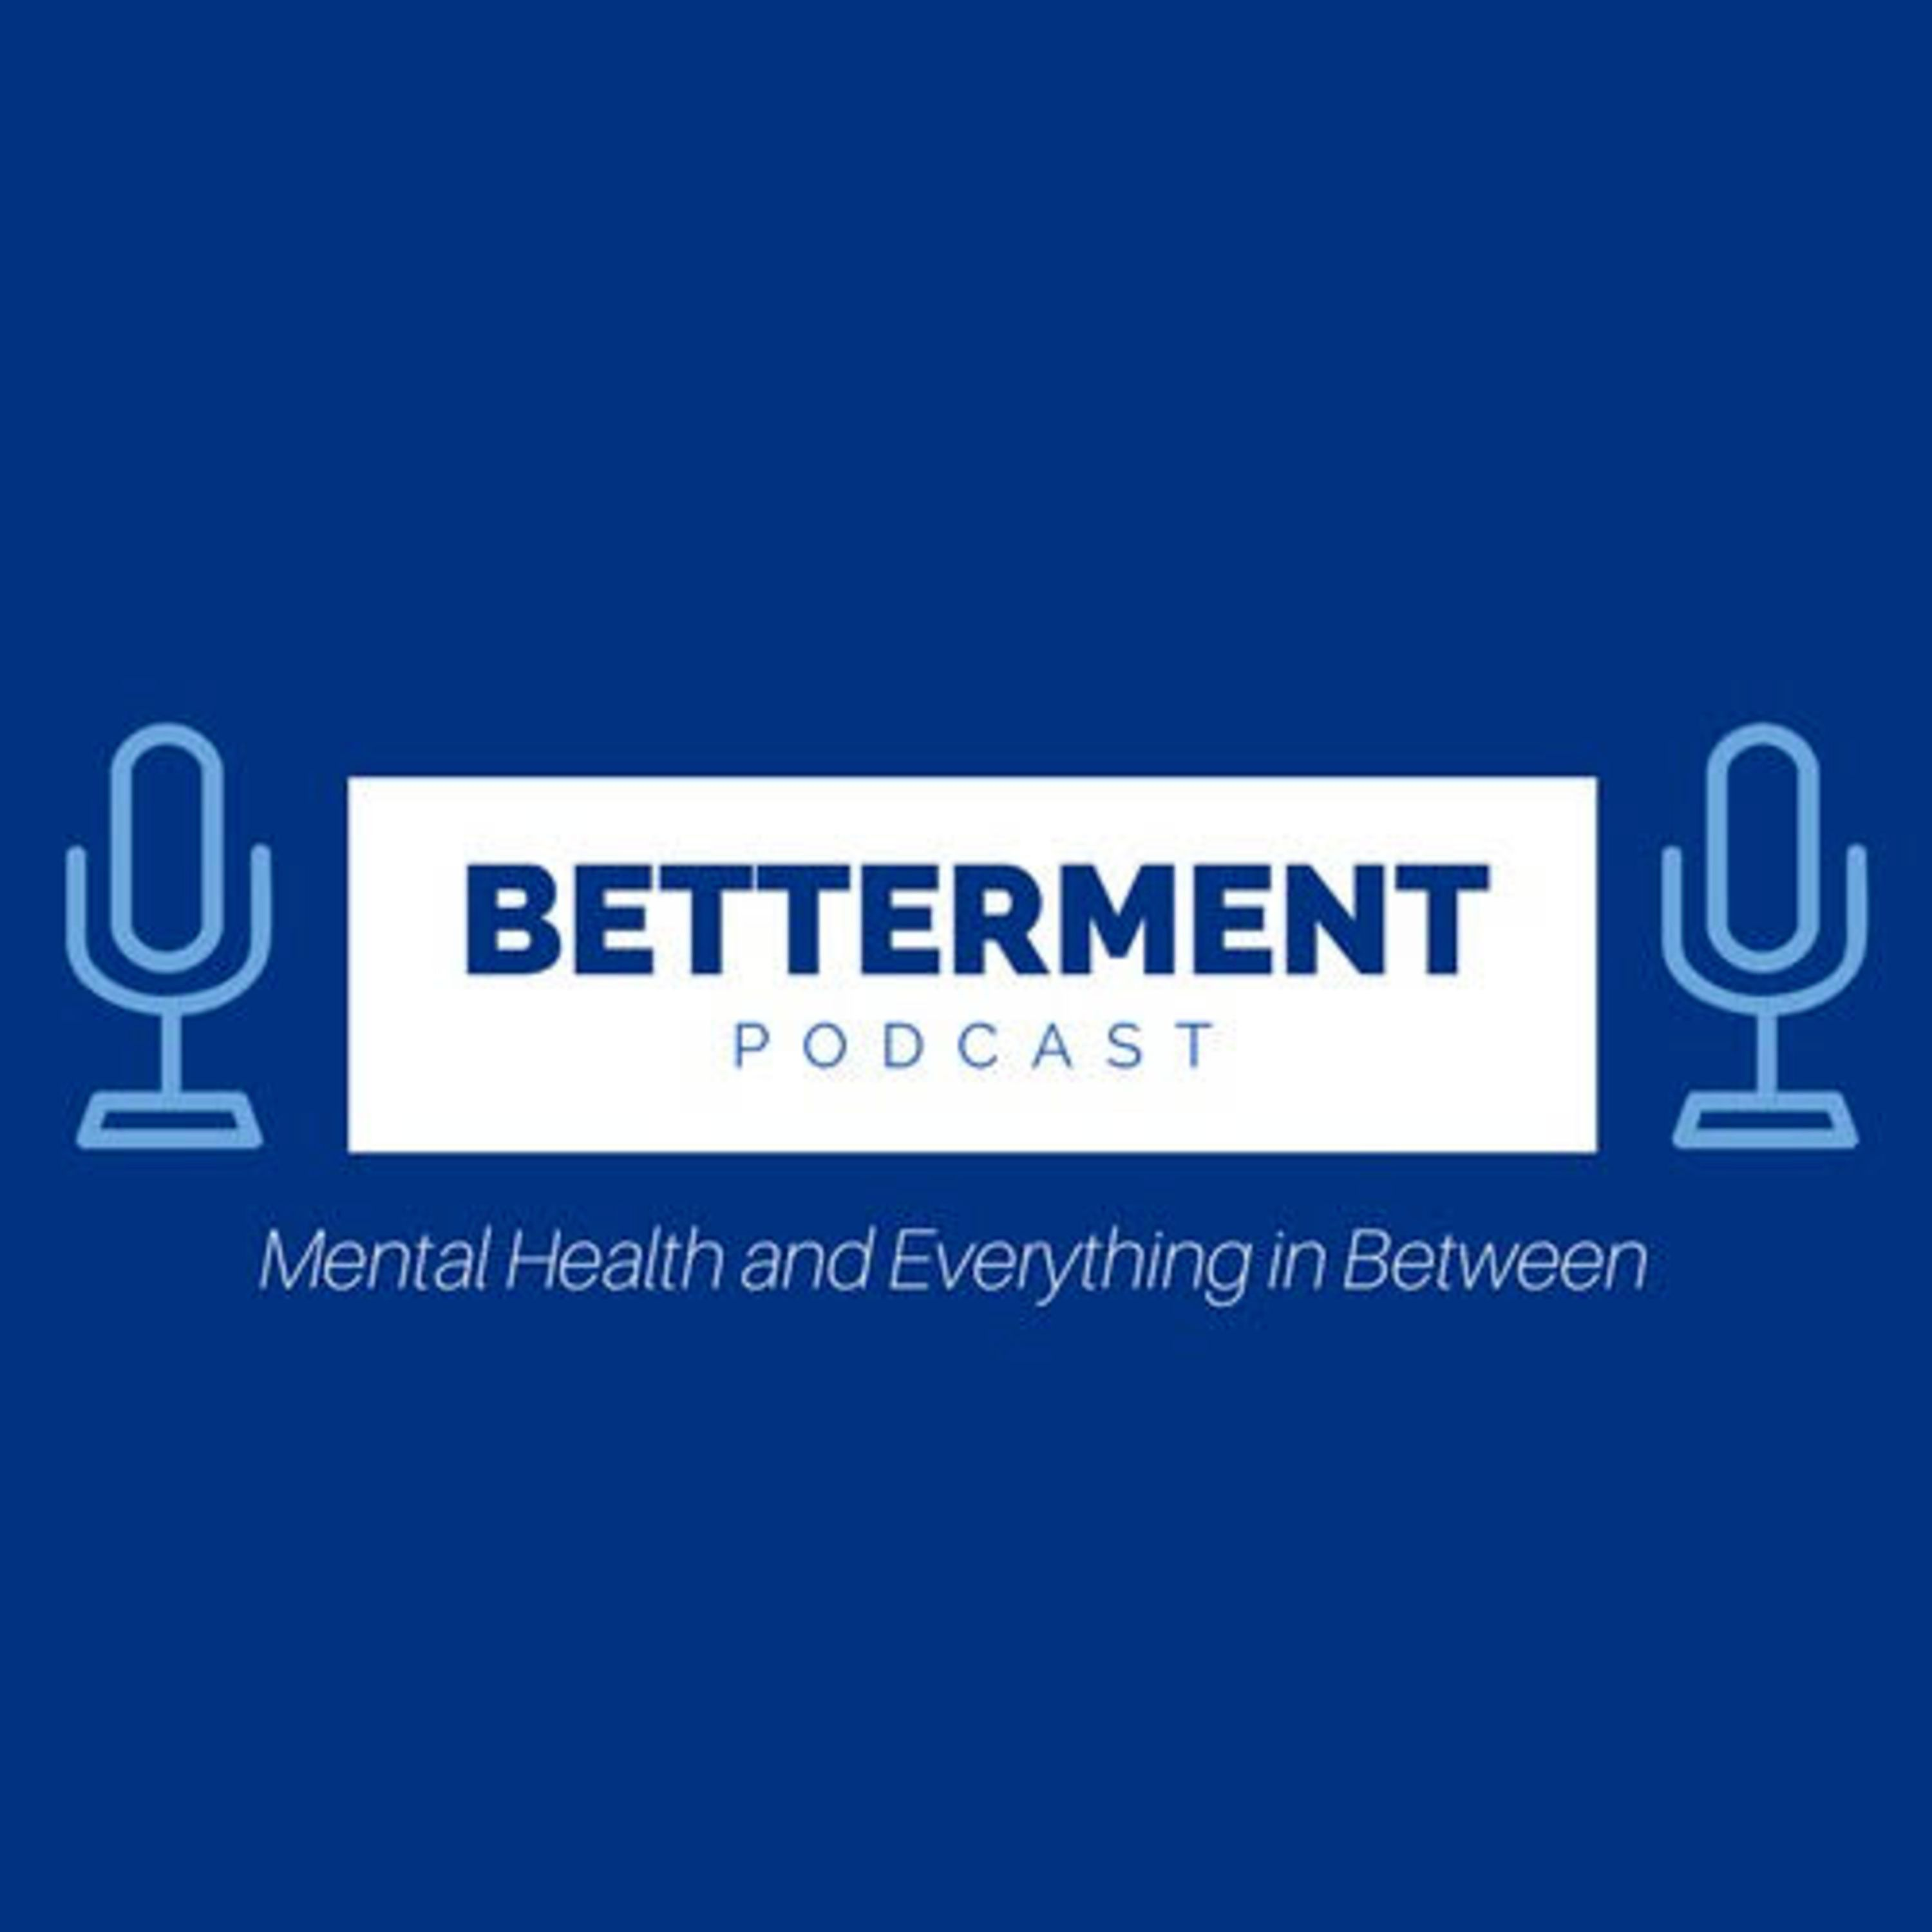 Betterment Podcast Episode 10 - Who We Are